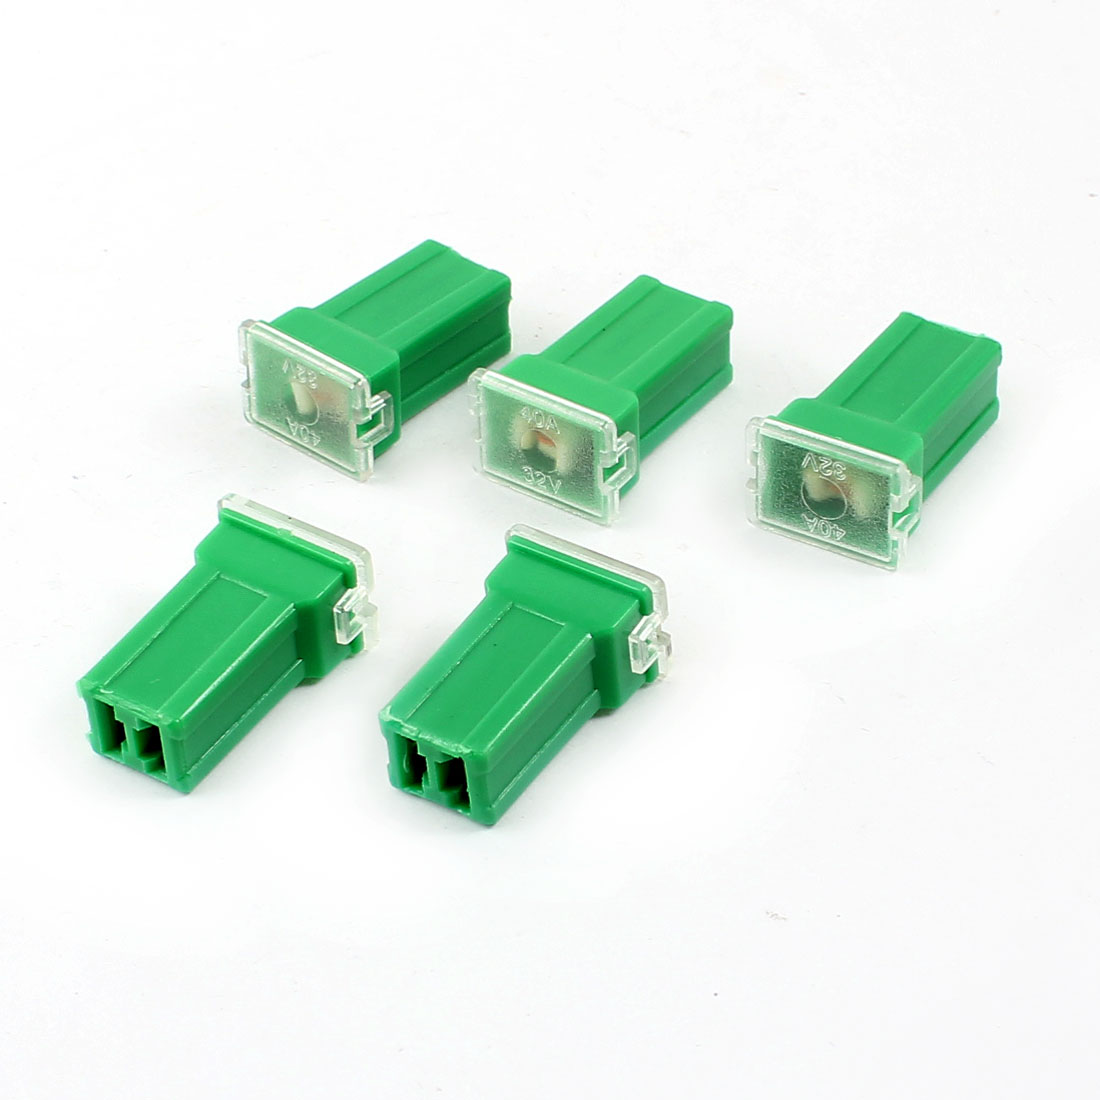 Vehicle Car Plastic Shell Straight Female Terminal Push in Blade Cartridge PAL Fuse 40Amp 32V Green 5pcs